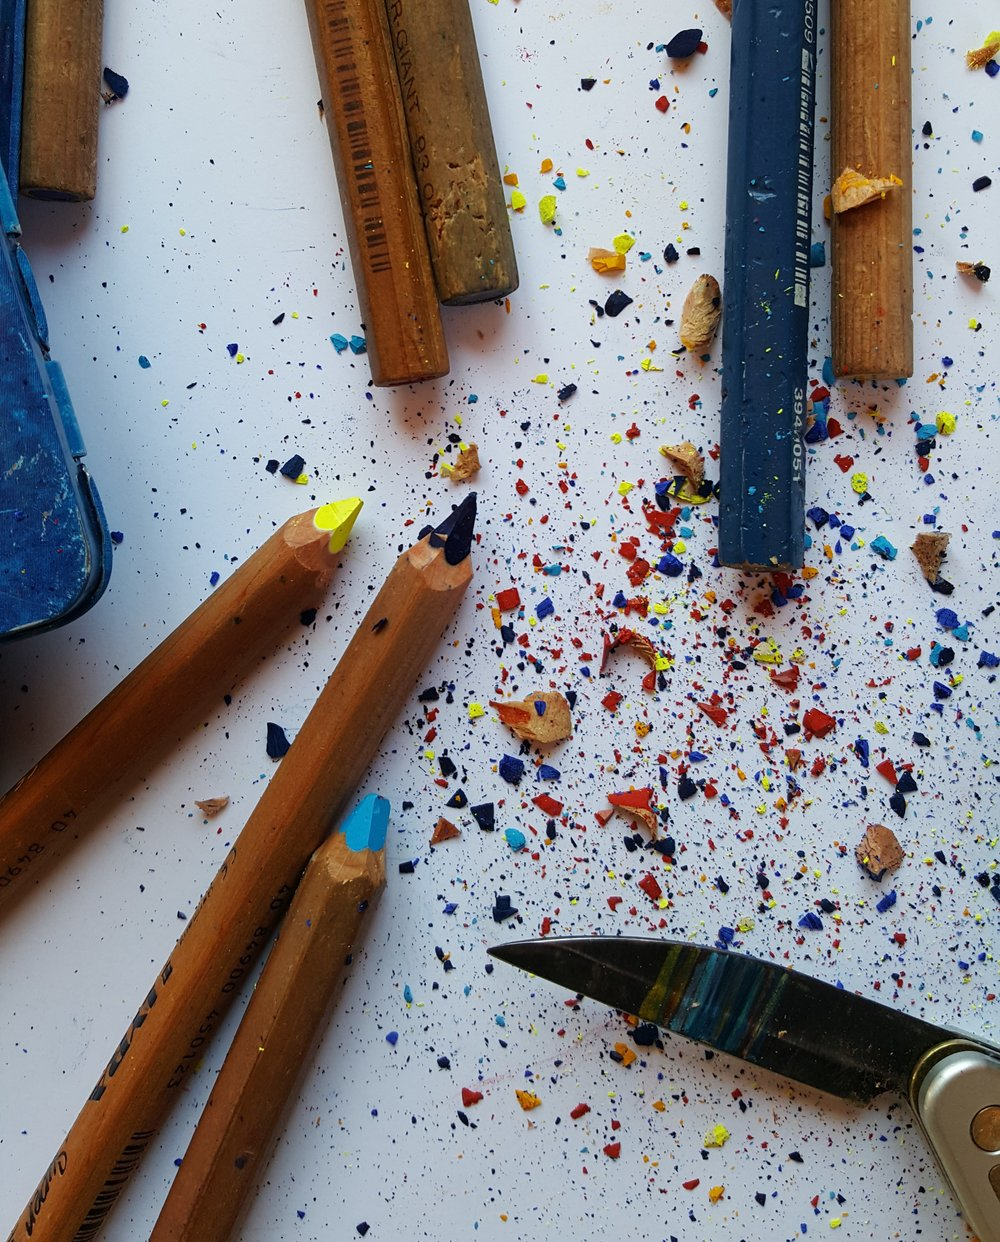 We sometimes lack for pencil sharpeners though.